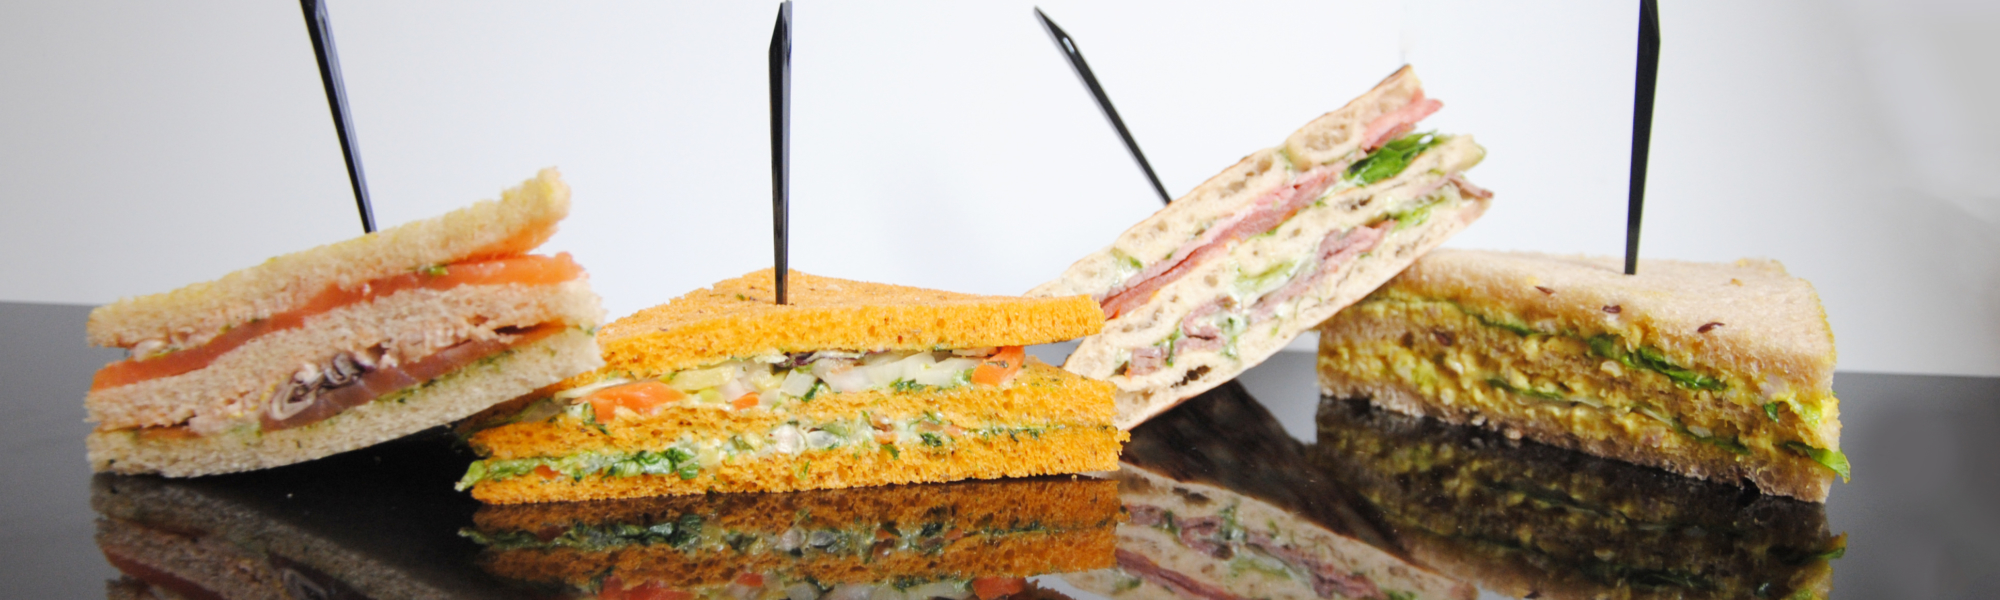 Lunch sandwiches PAGE